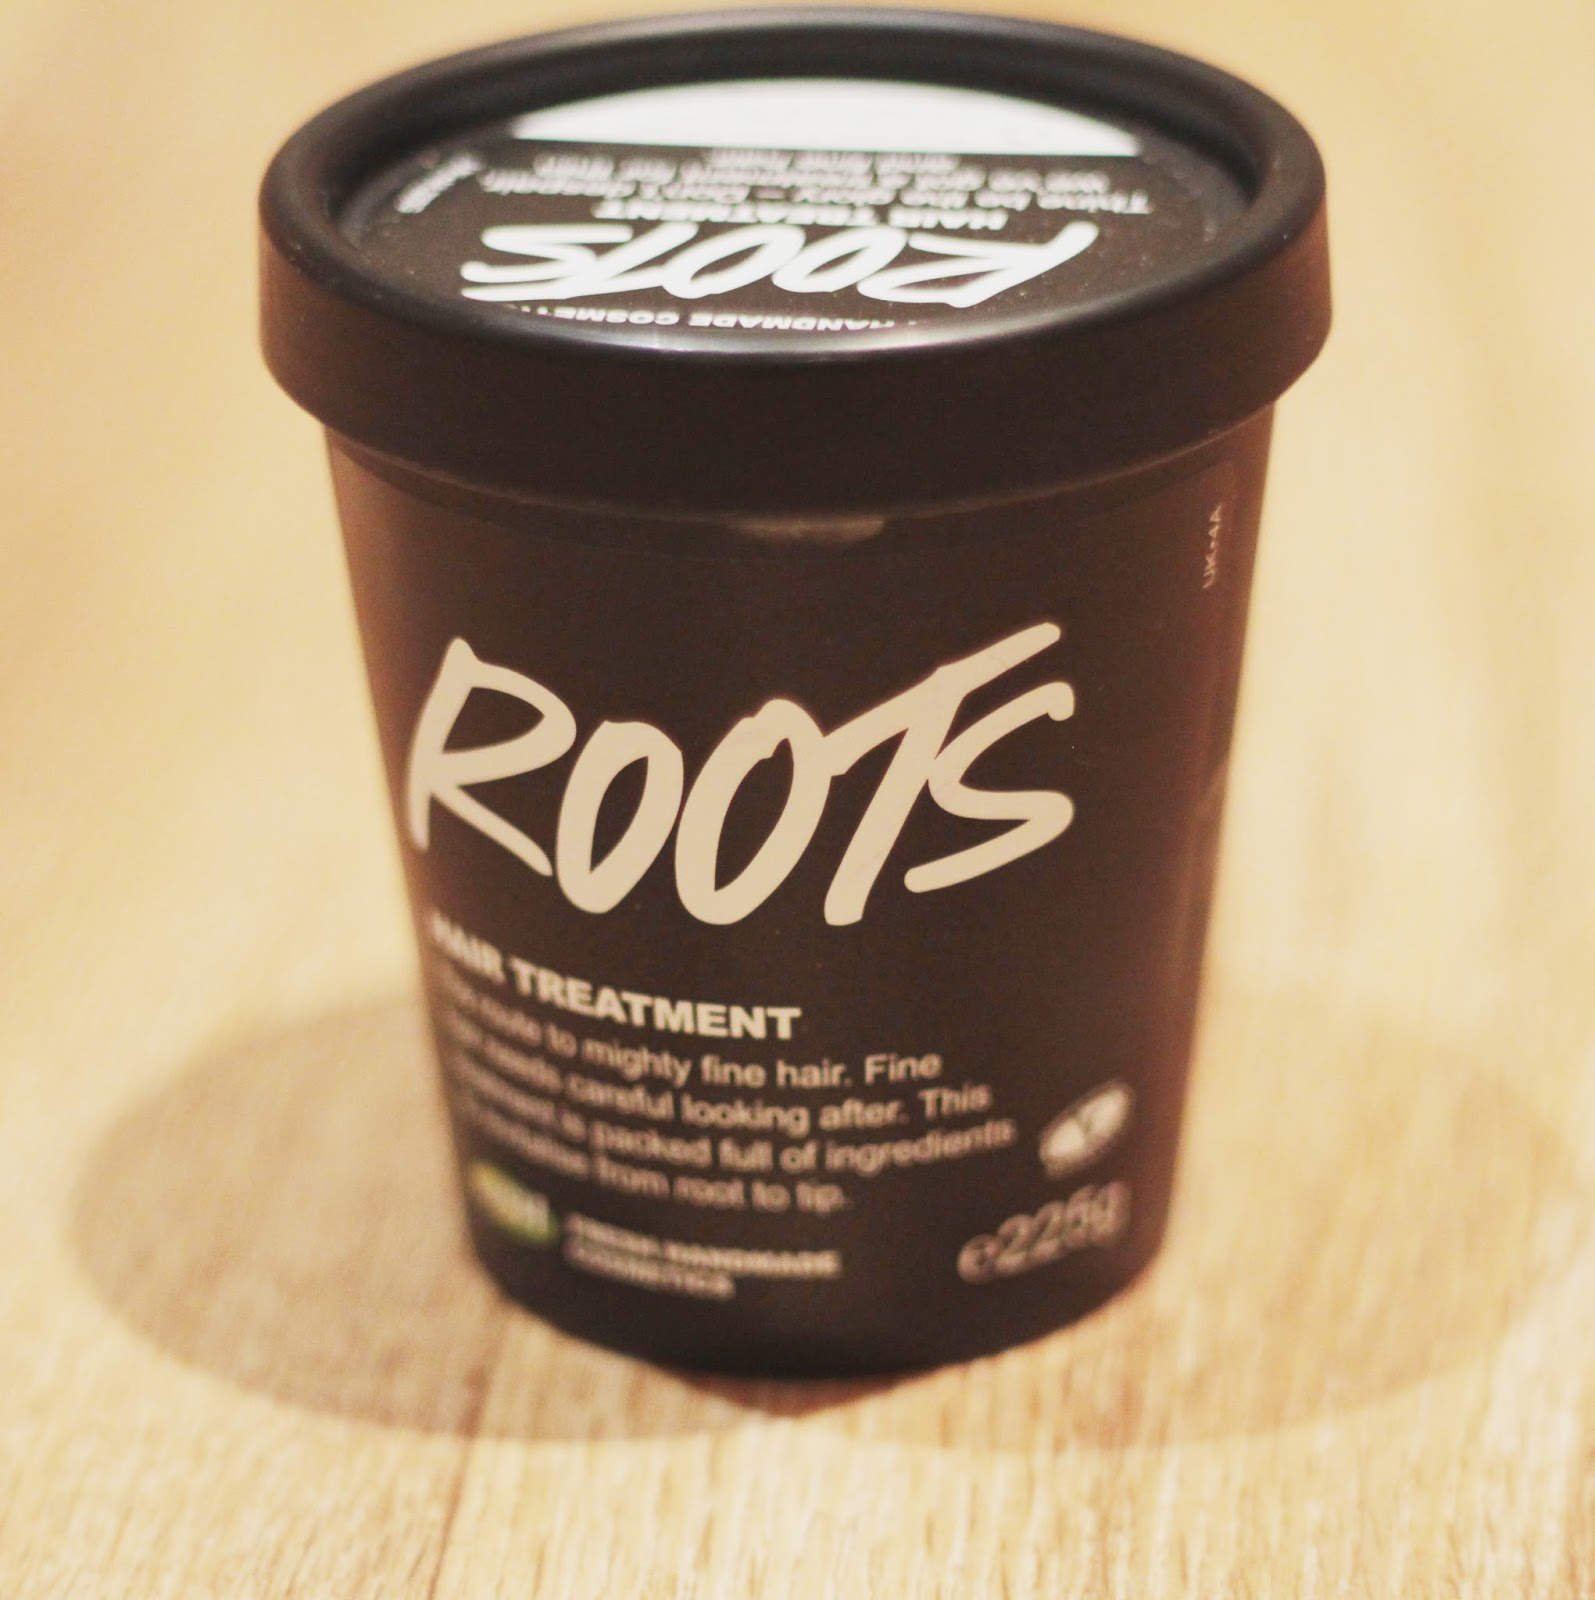 Lush ROOTS hair scalp treatment product outer